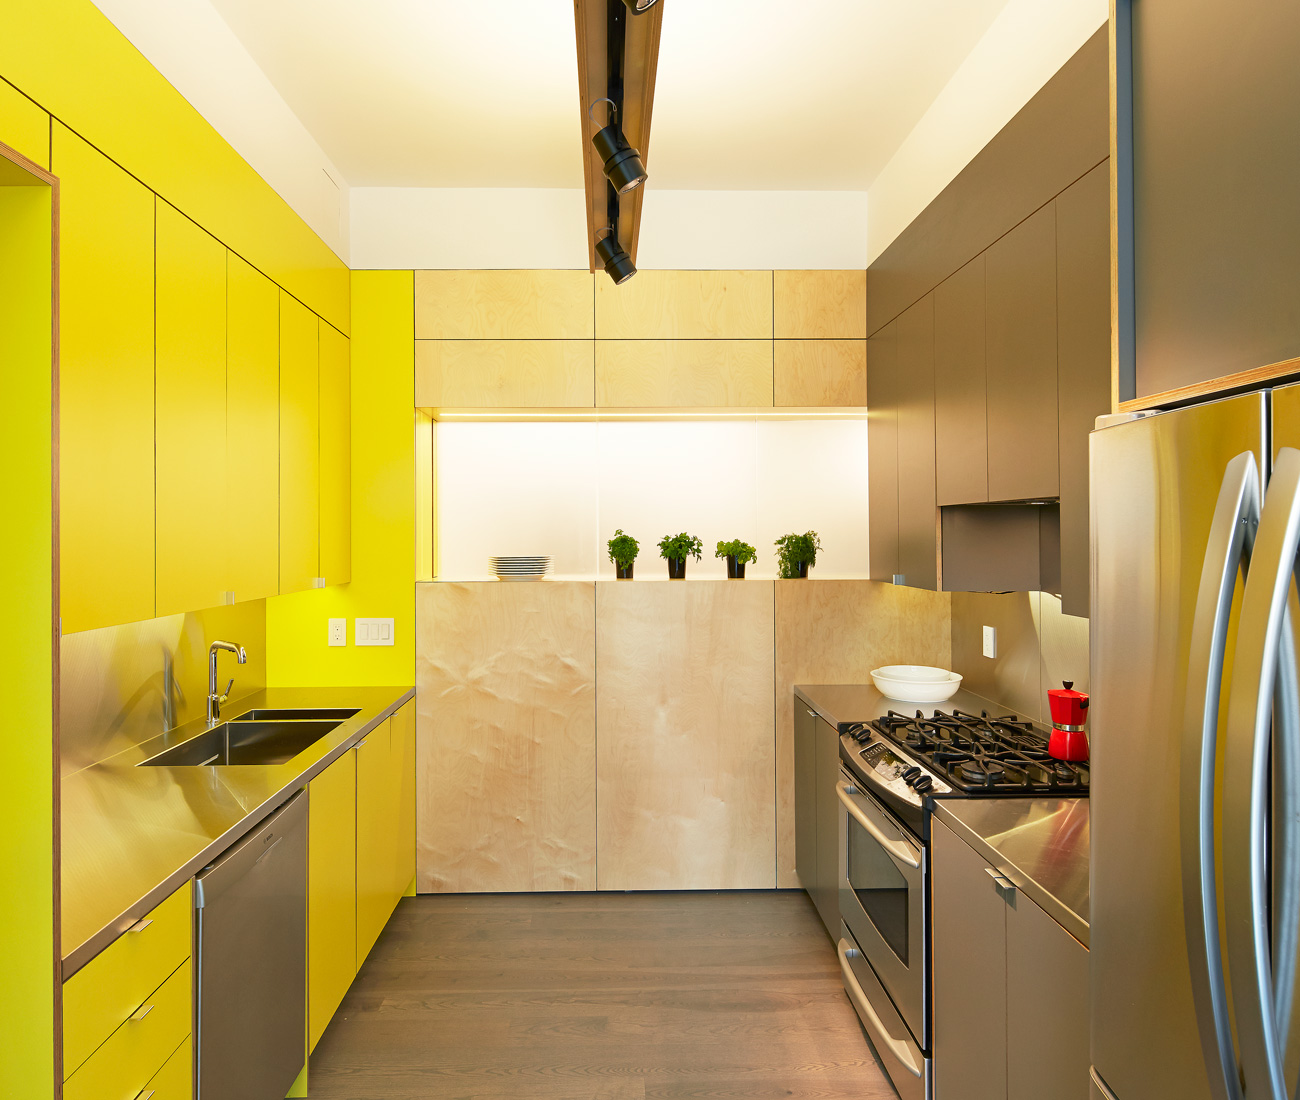 Yellow cabinetry incorporates a backlit neon art piece by Orest Tataryn. Engineered white oak flooring by Baltic Wood, chair by B&B Italia and resin vase by Gaetano Pesce, courtesy of Studio Pazo, Toronto.